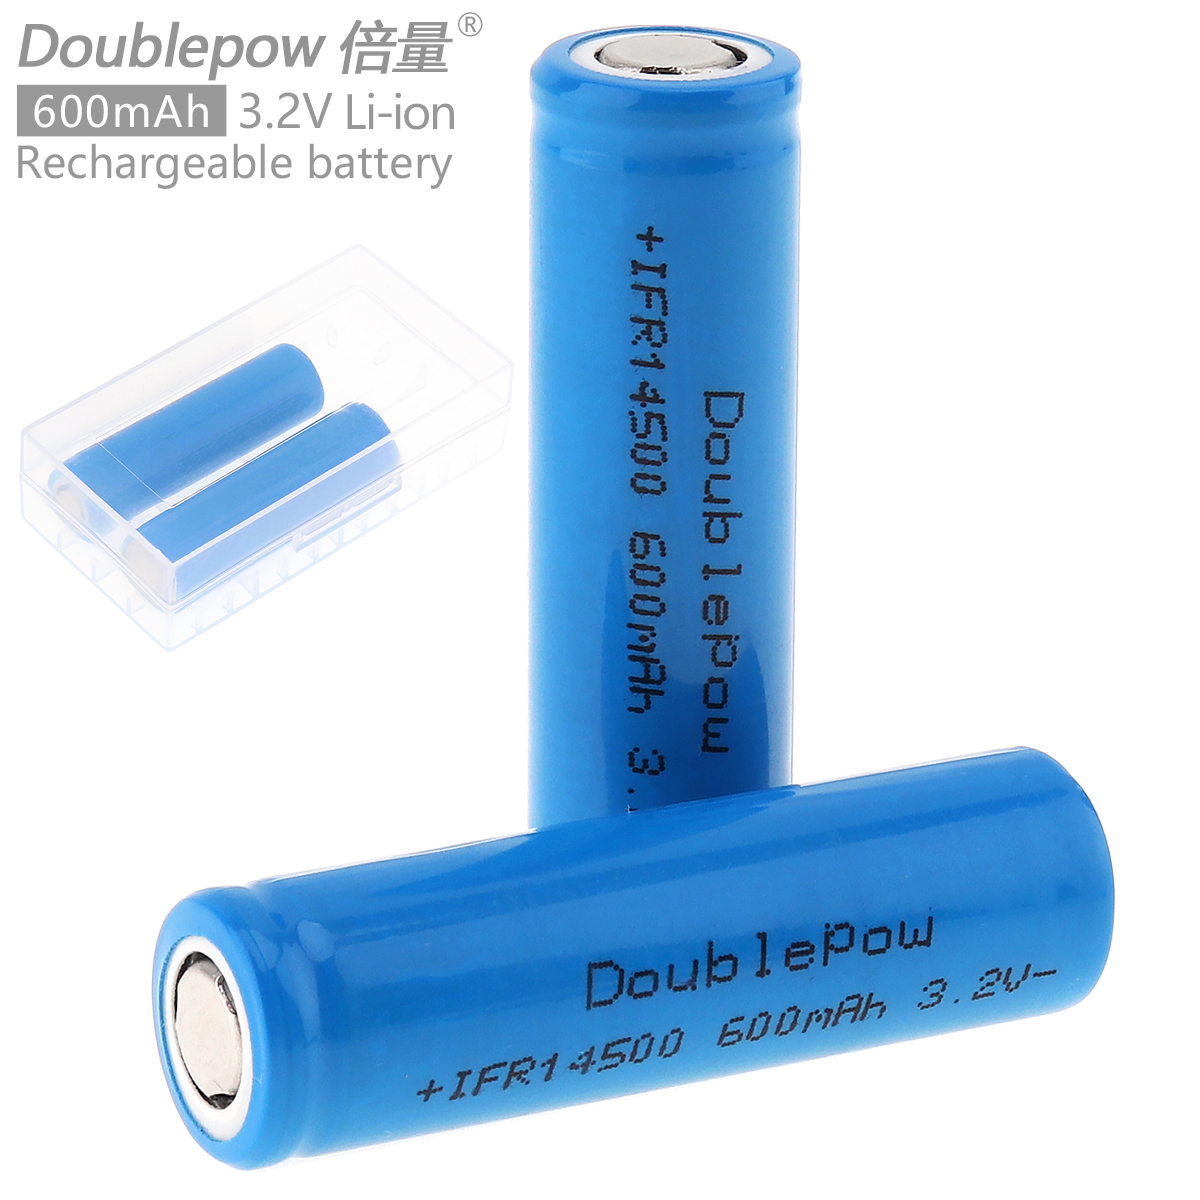 Doublepow 2pcs 14500 600mAh 3.2V Li-ion Rechargeable Battery with Safety Relief Valve + Portable Battery Storage Box